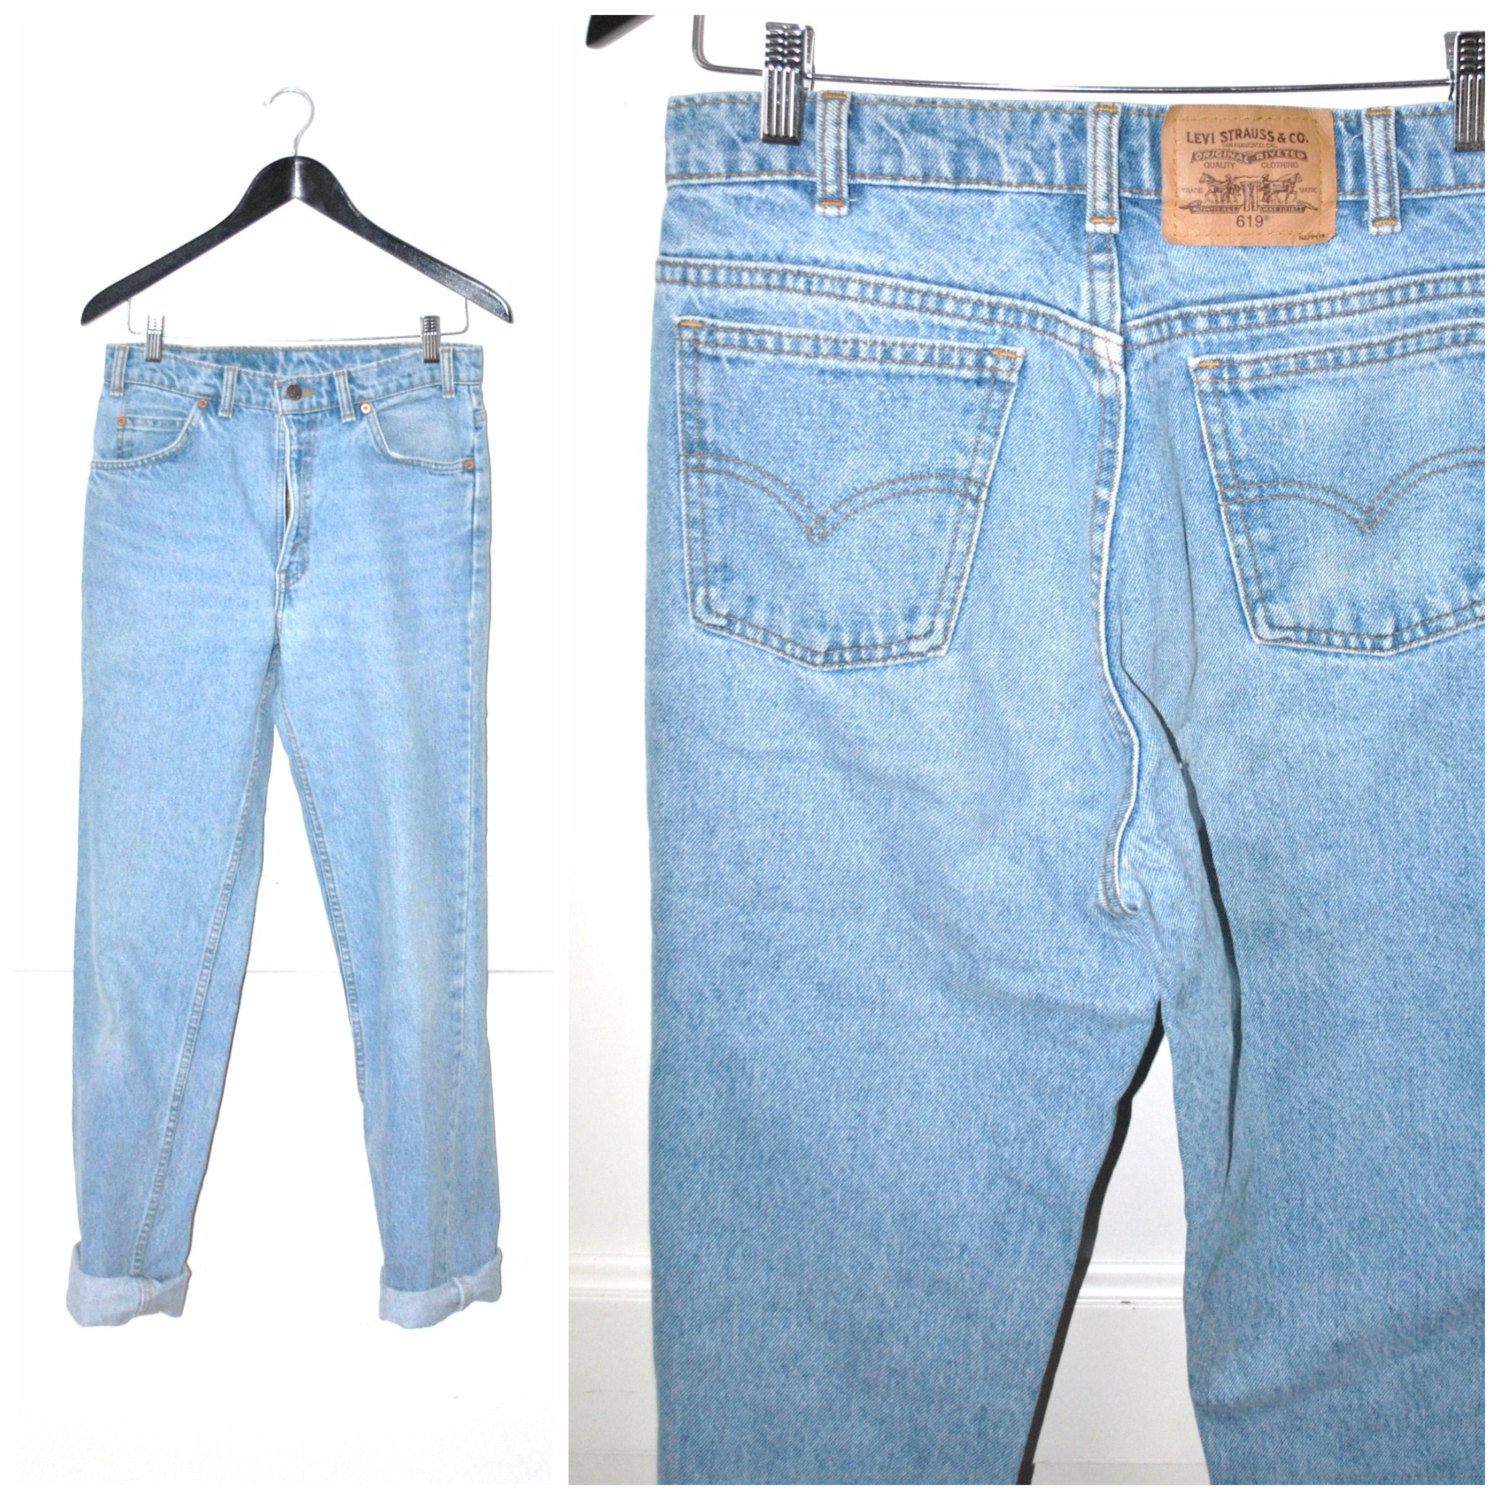 687054c2 90s grunge LEVIS mom jeans / vintage early 1990s high waisted LIGHT WASH  faded denim boyfriend jeans ...